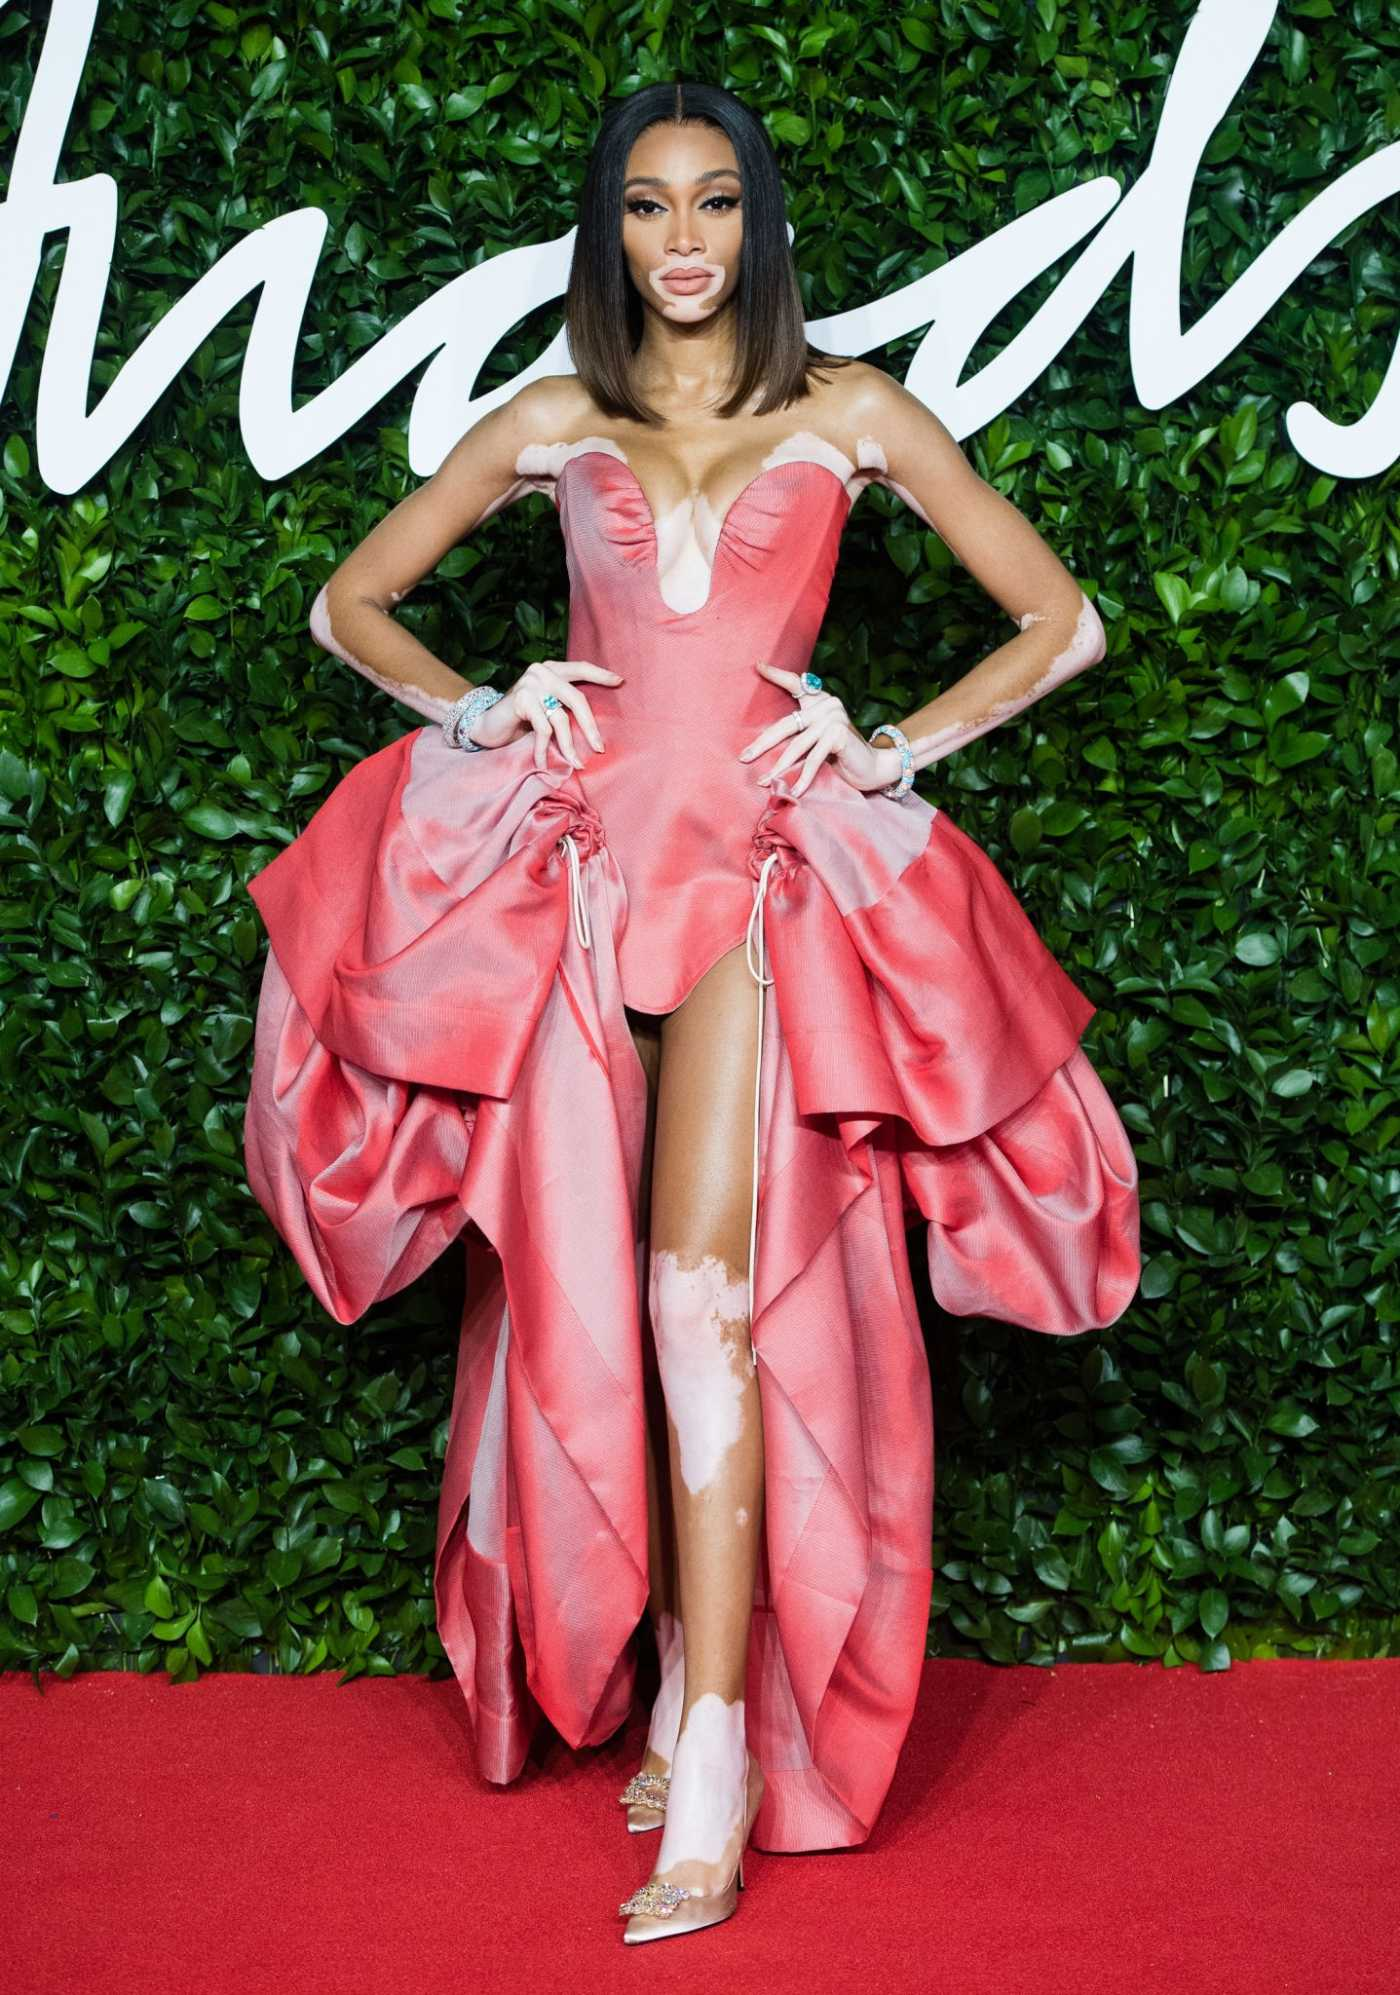 Winnie Harlow Attends 2019 Fashion Awards at Royal Albert Hall in London 12/02/2019